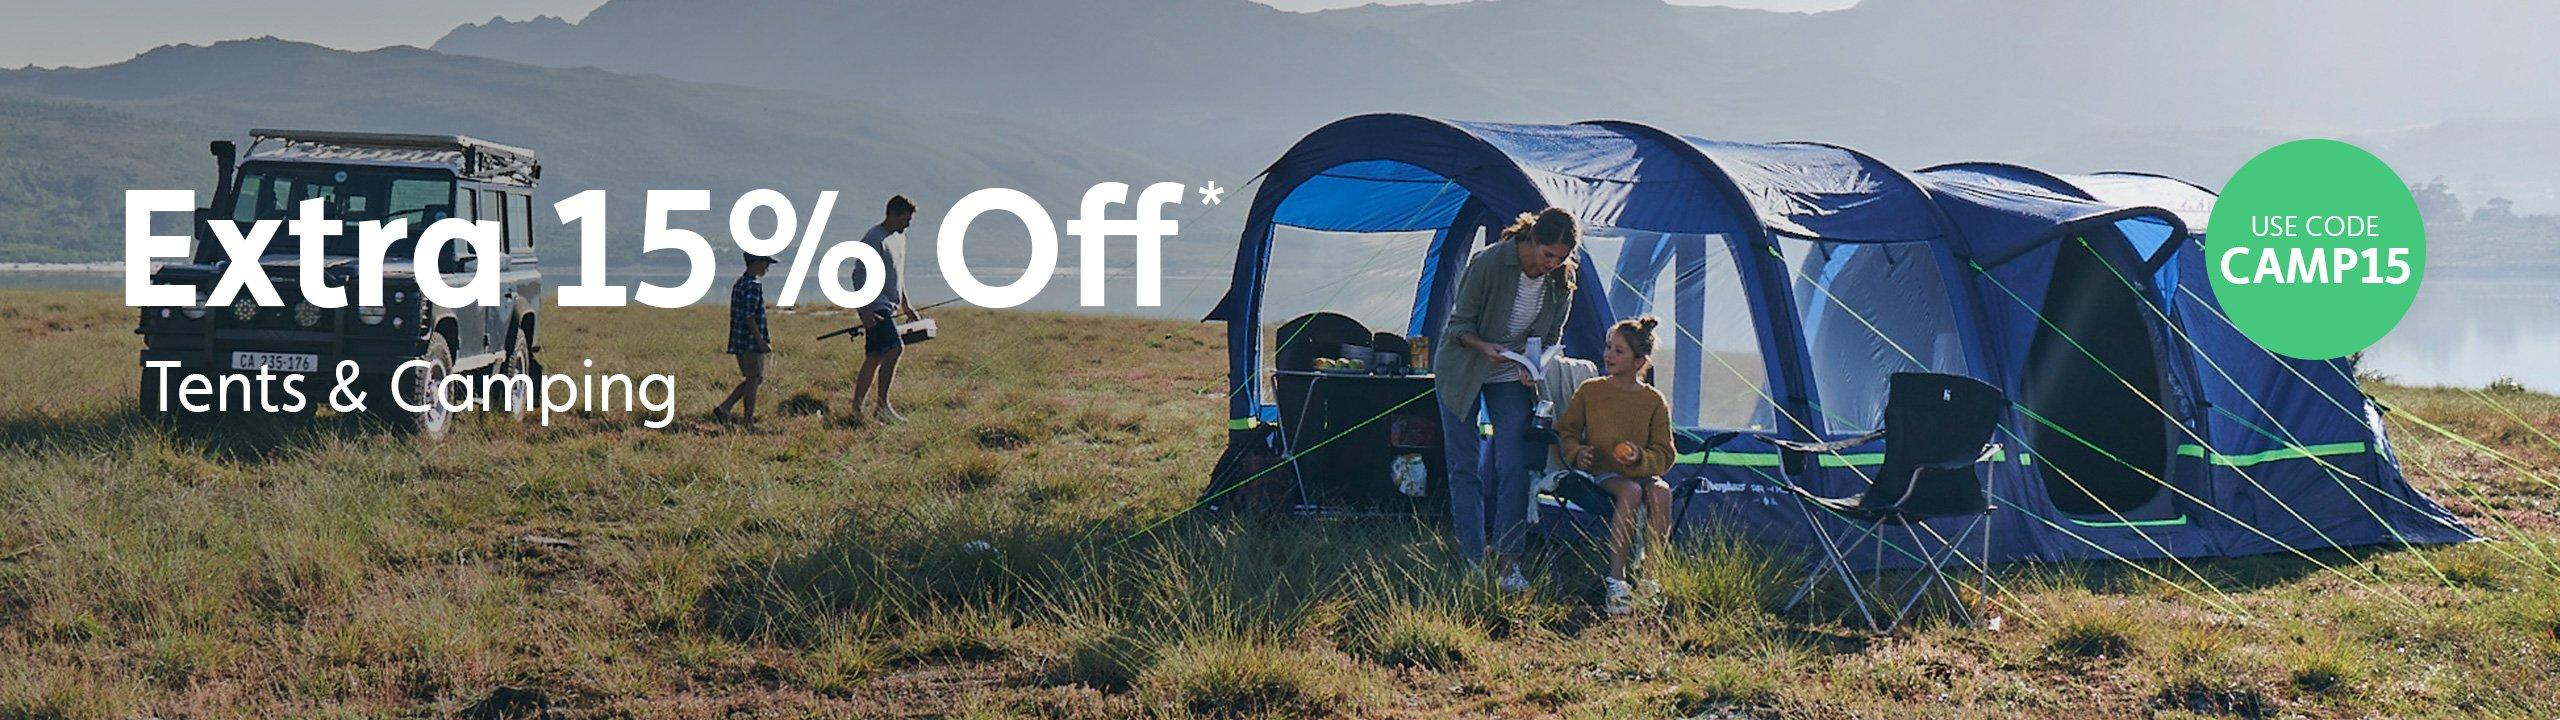 Extra 15% Off Tents & Camping